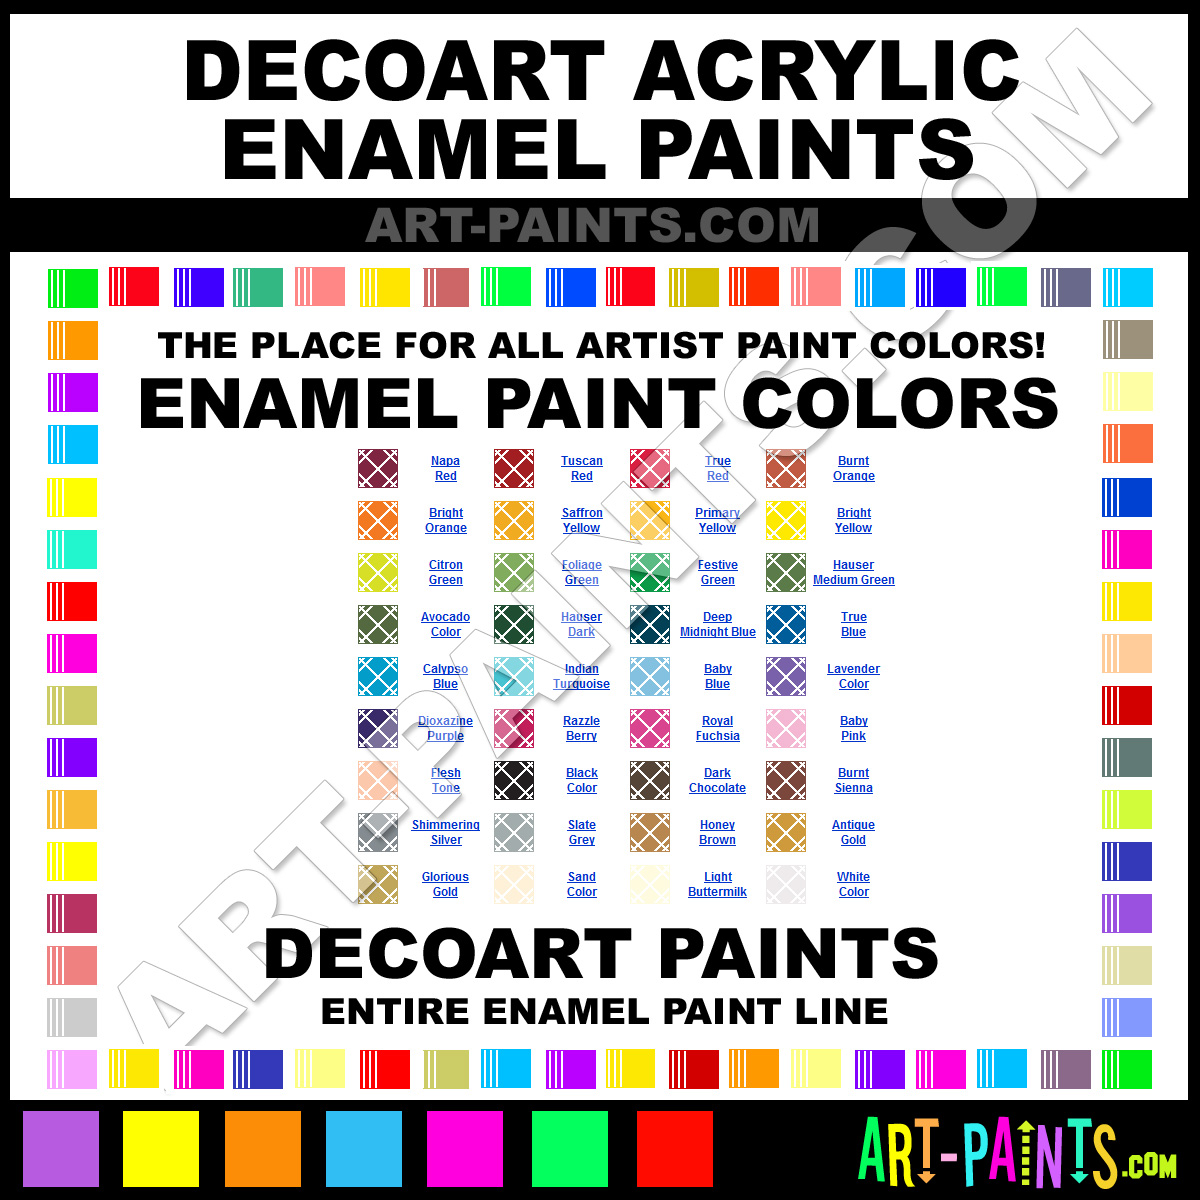 Napa Auto Paint Color Chart >> Napa Paint Colors - Paint Color Ideas